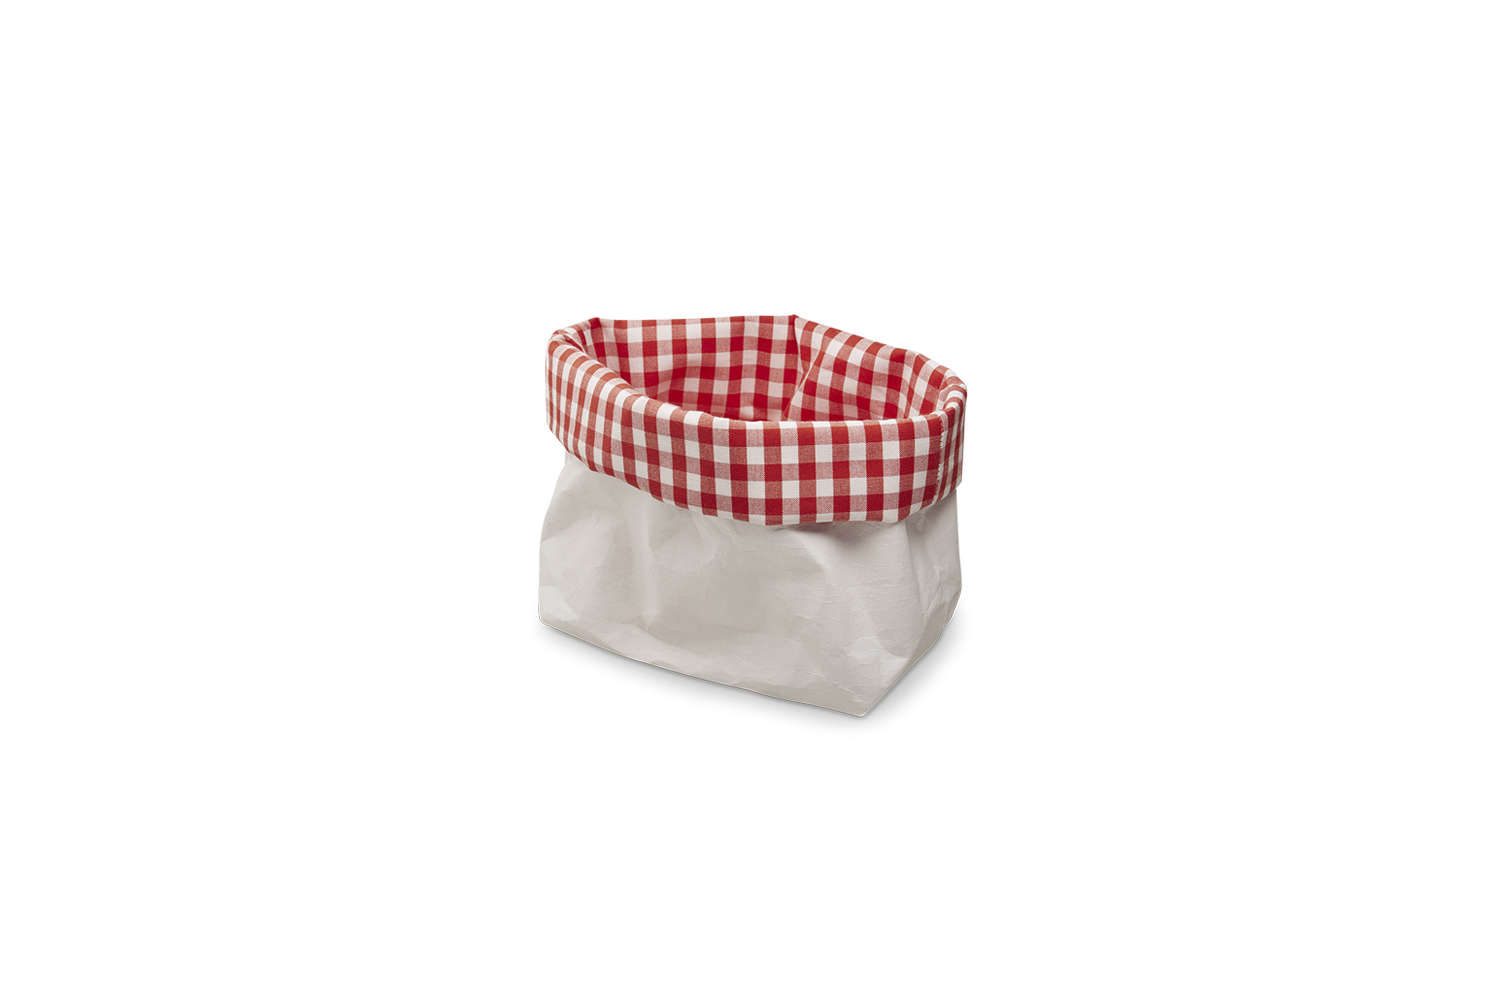 Merci Vichy Basket Red and White